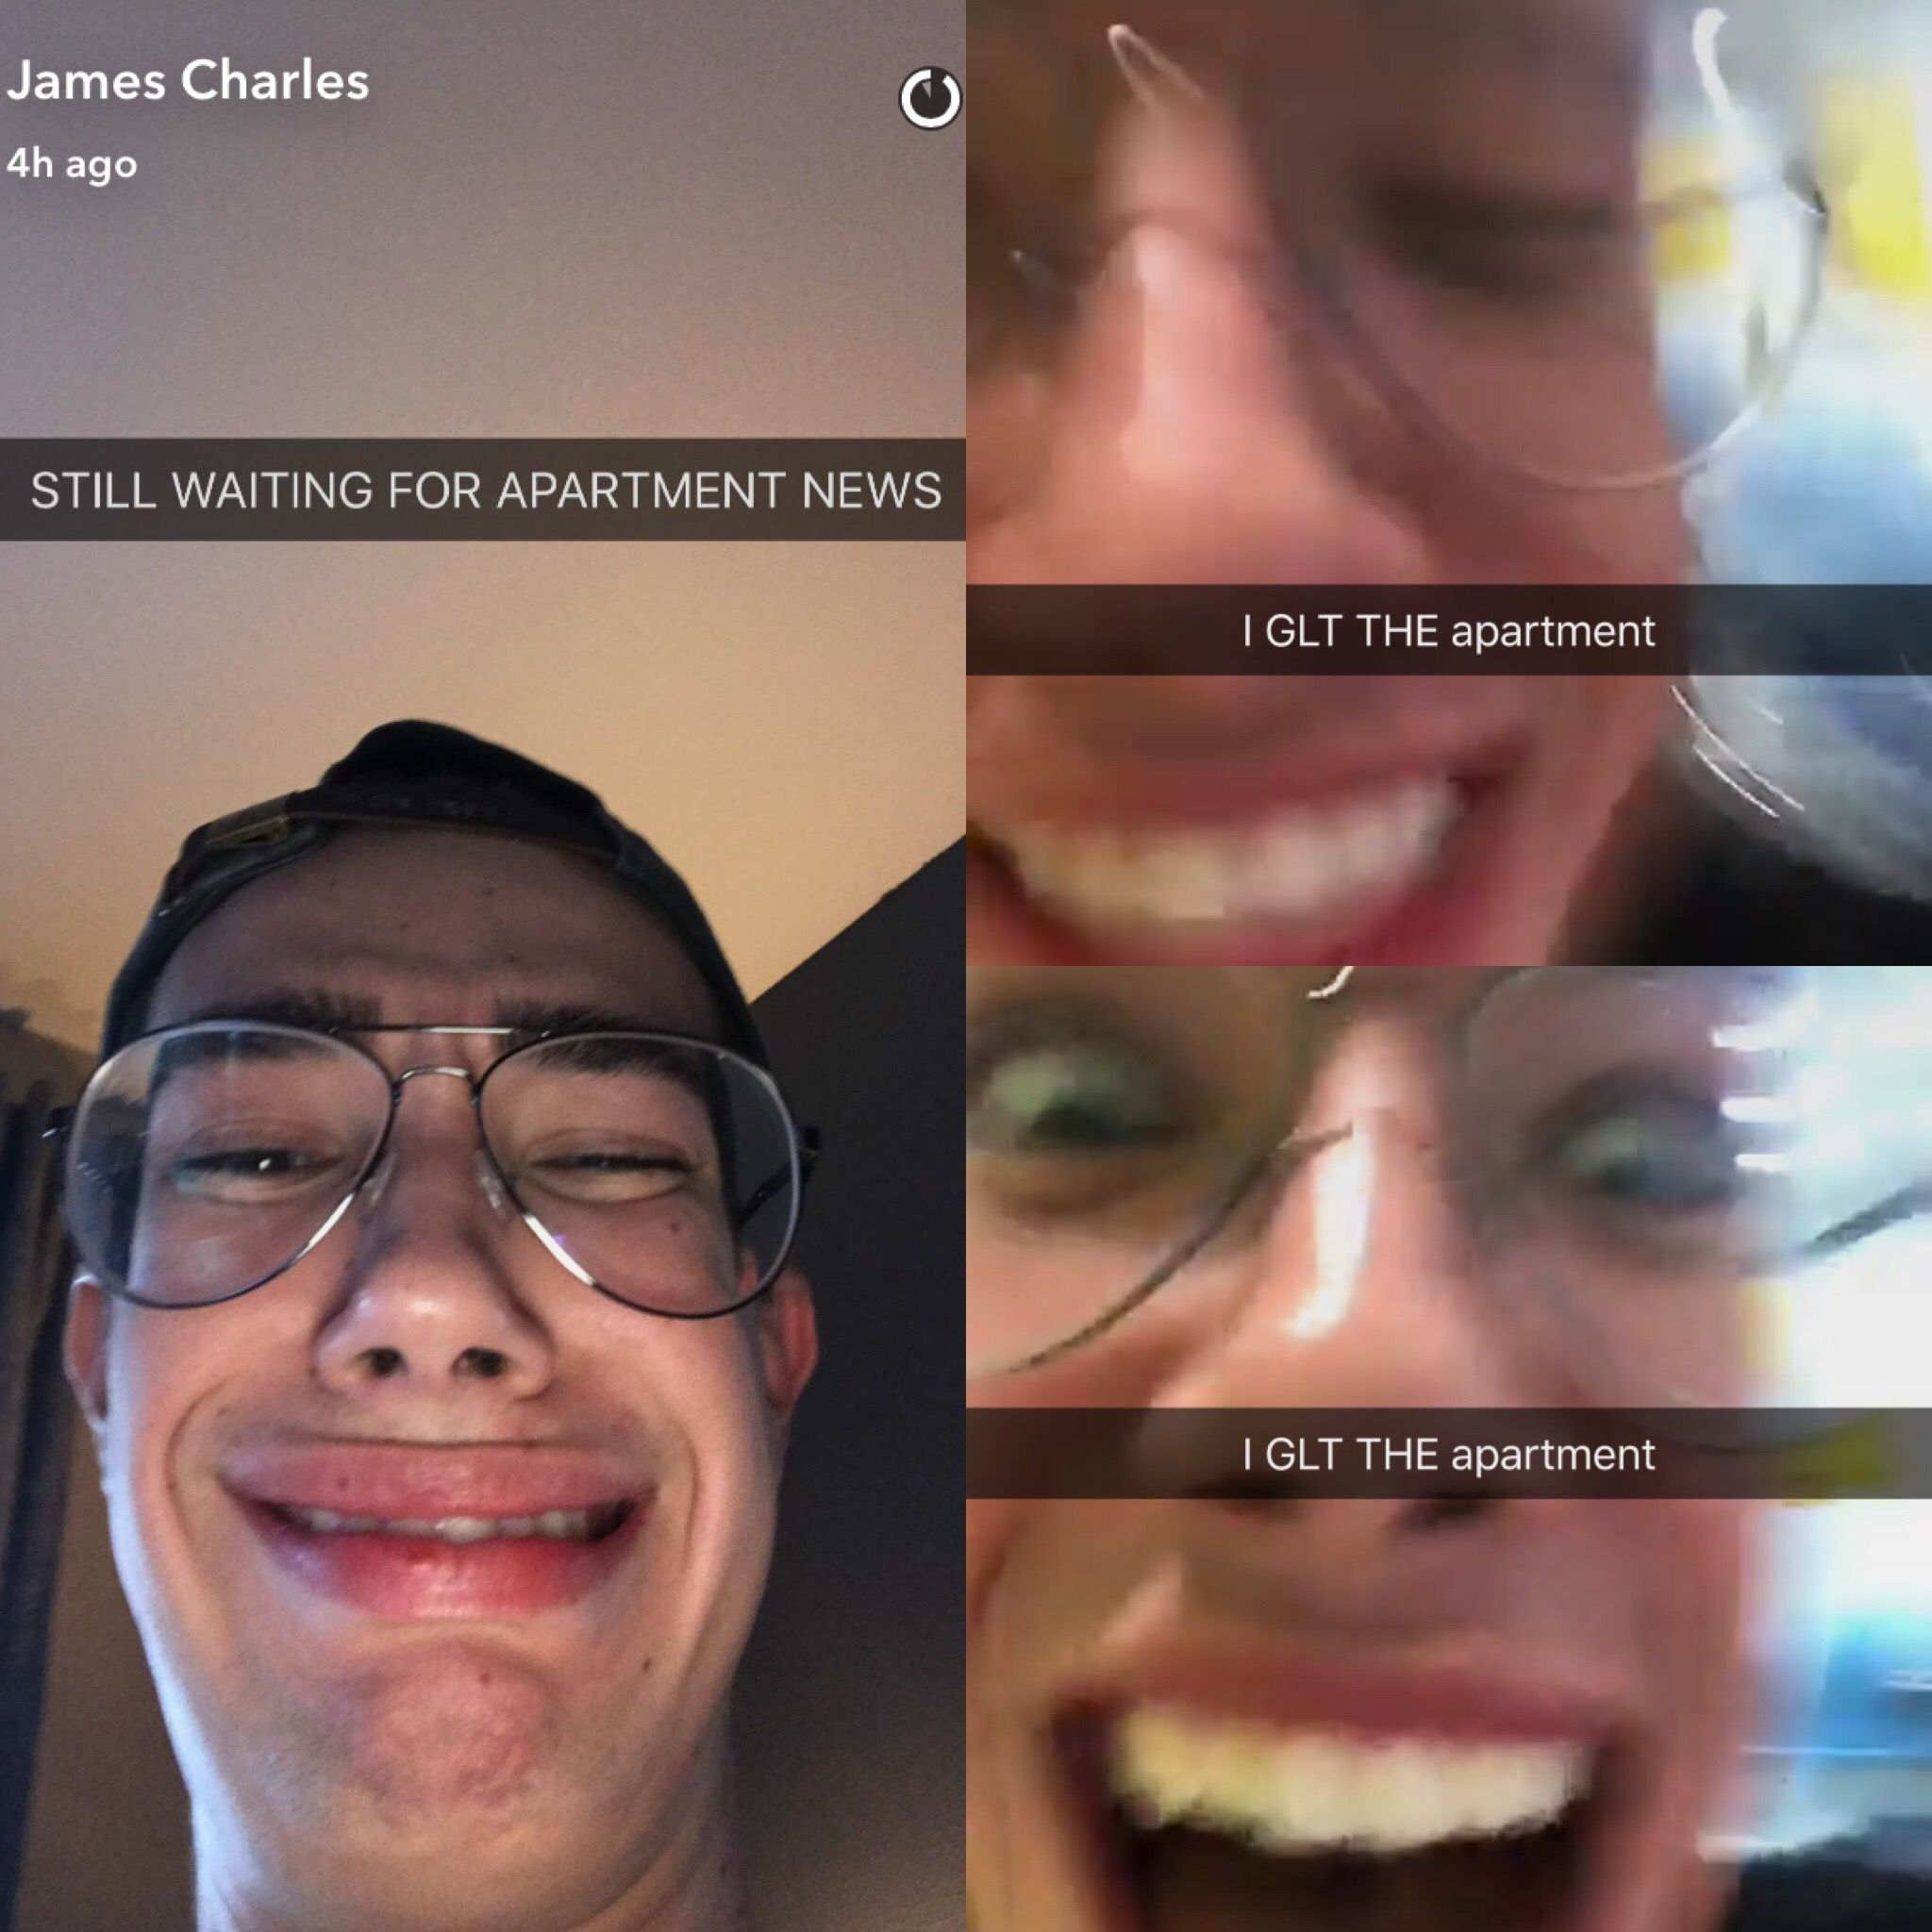 James Got The Apartment He's Wanted And Already